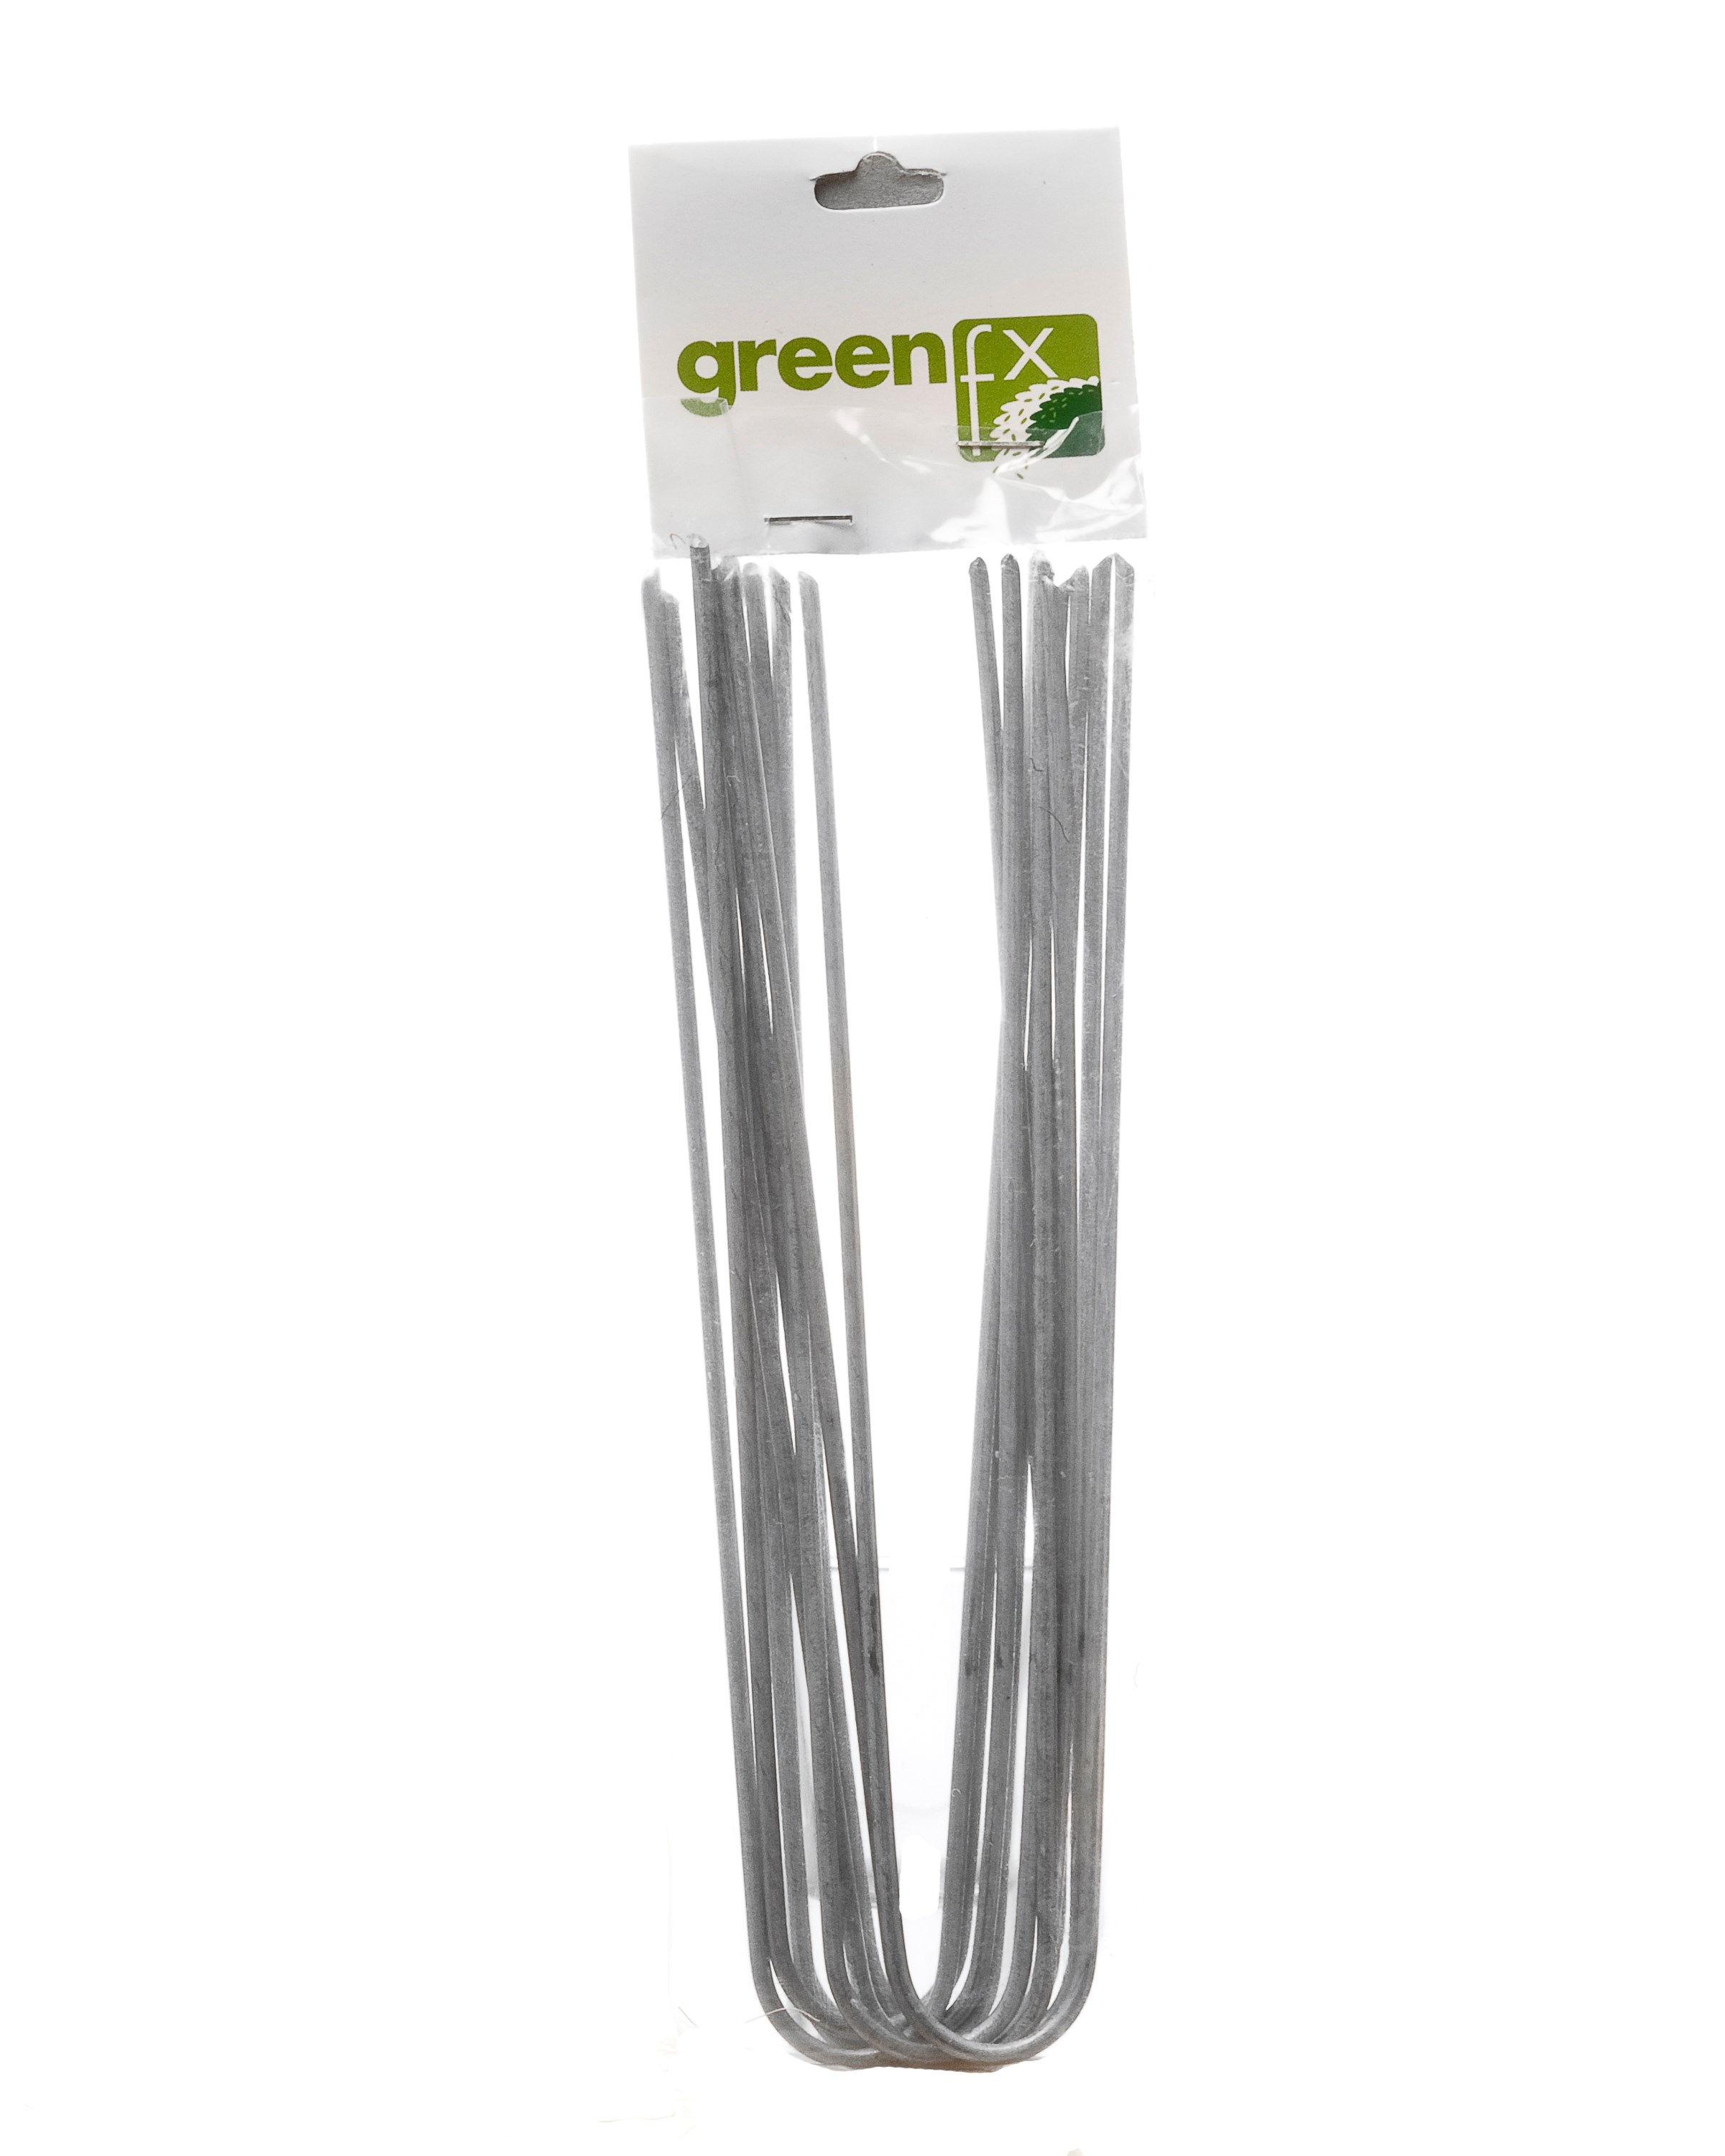 GreenFx  Artificial Grass Fixing Pins 20cm - 10 Pack